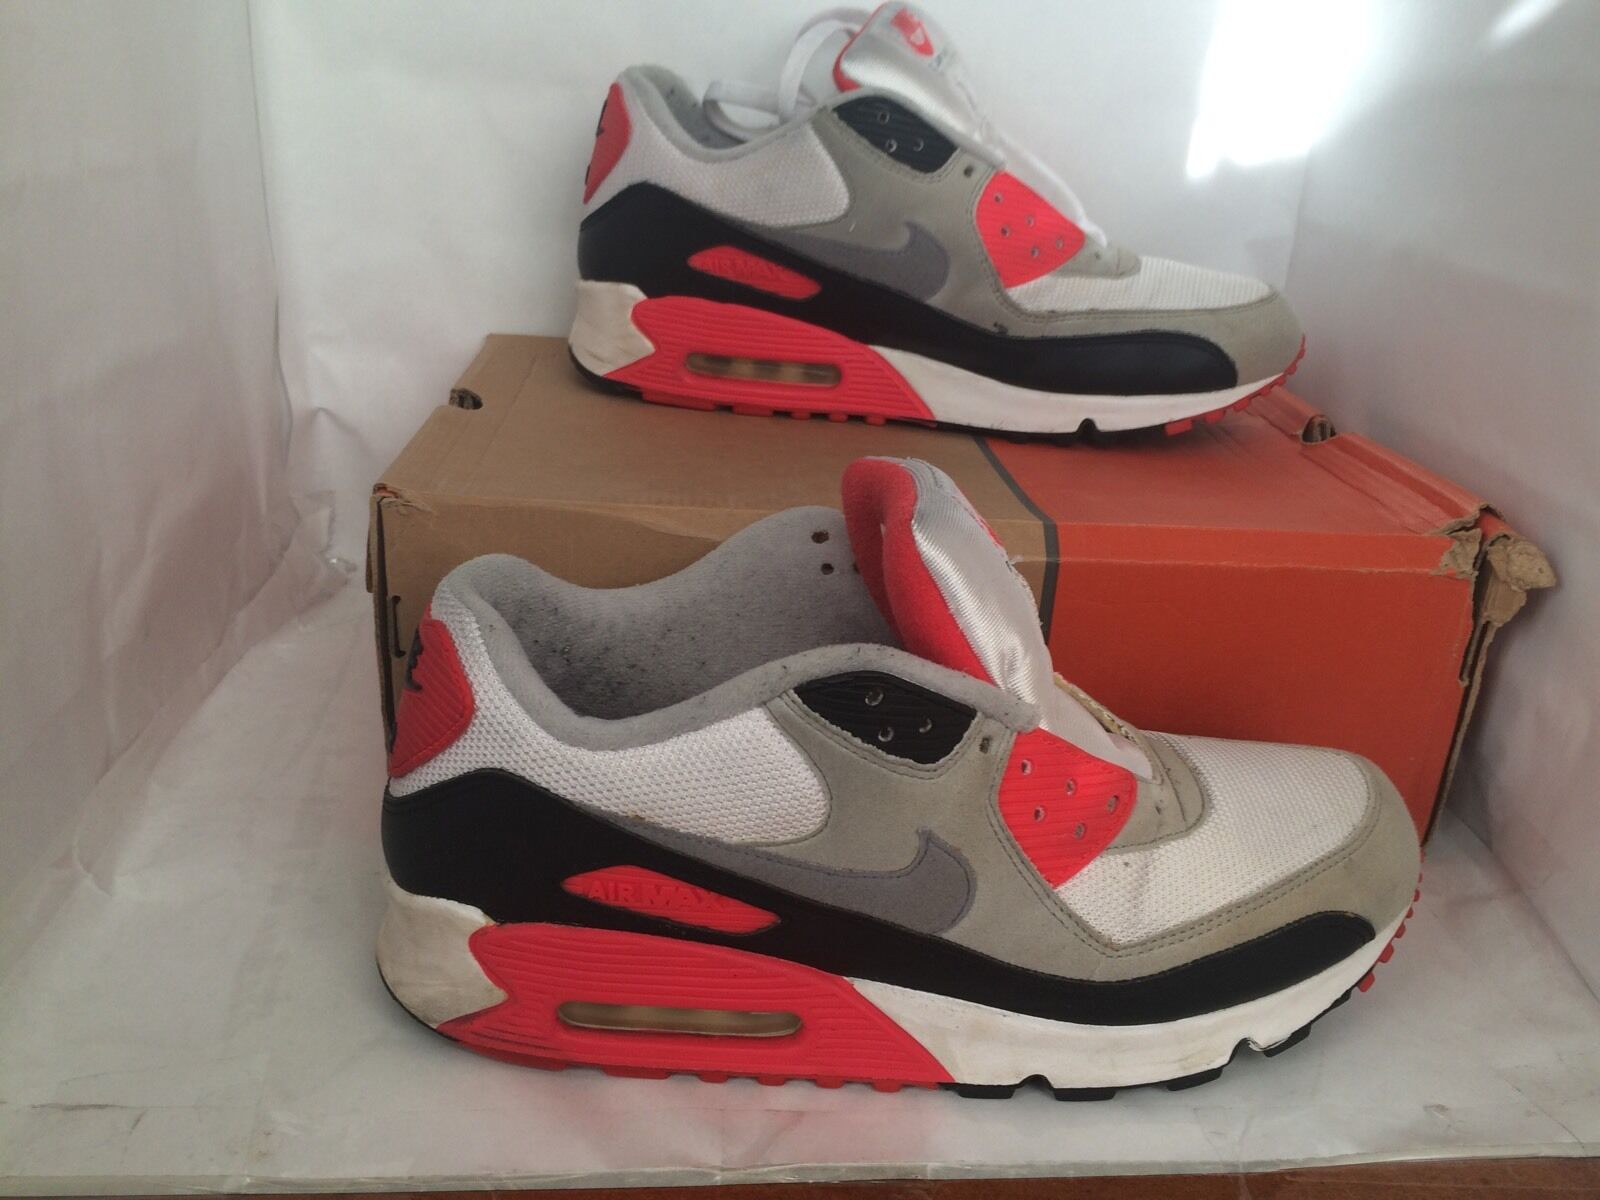 Nike Air Max 90 Infrared Size 9.5 History Of Air (HOA) Used Supreme